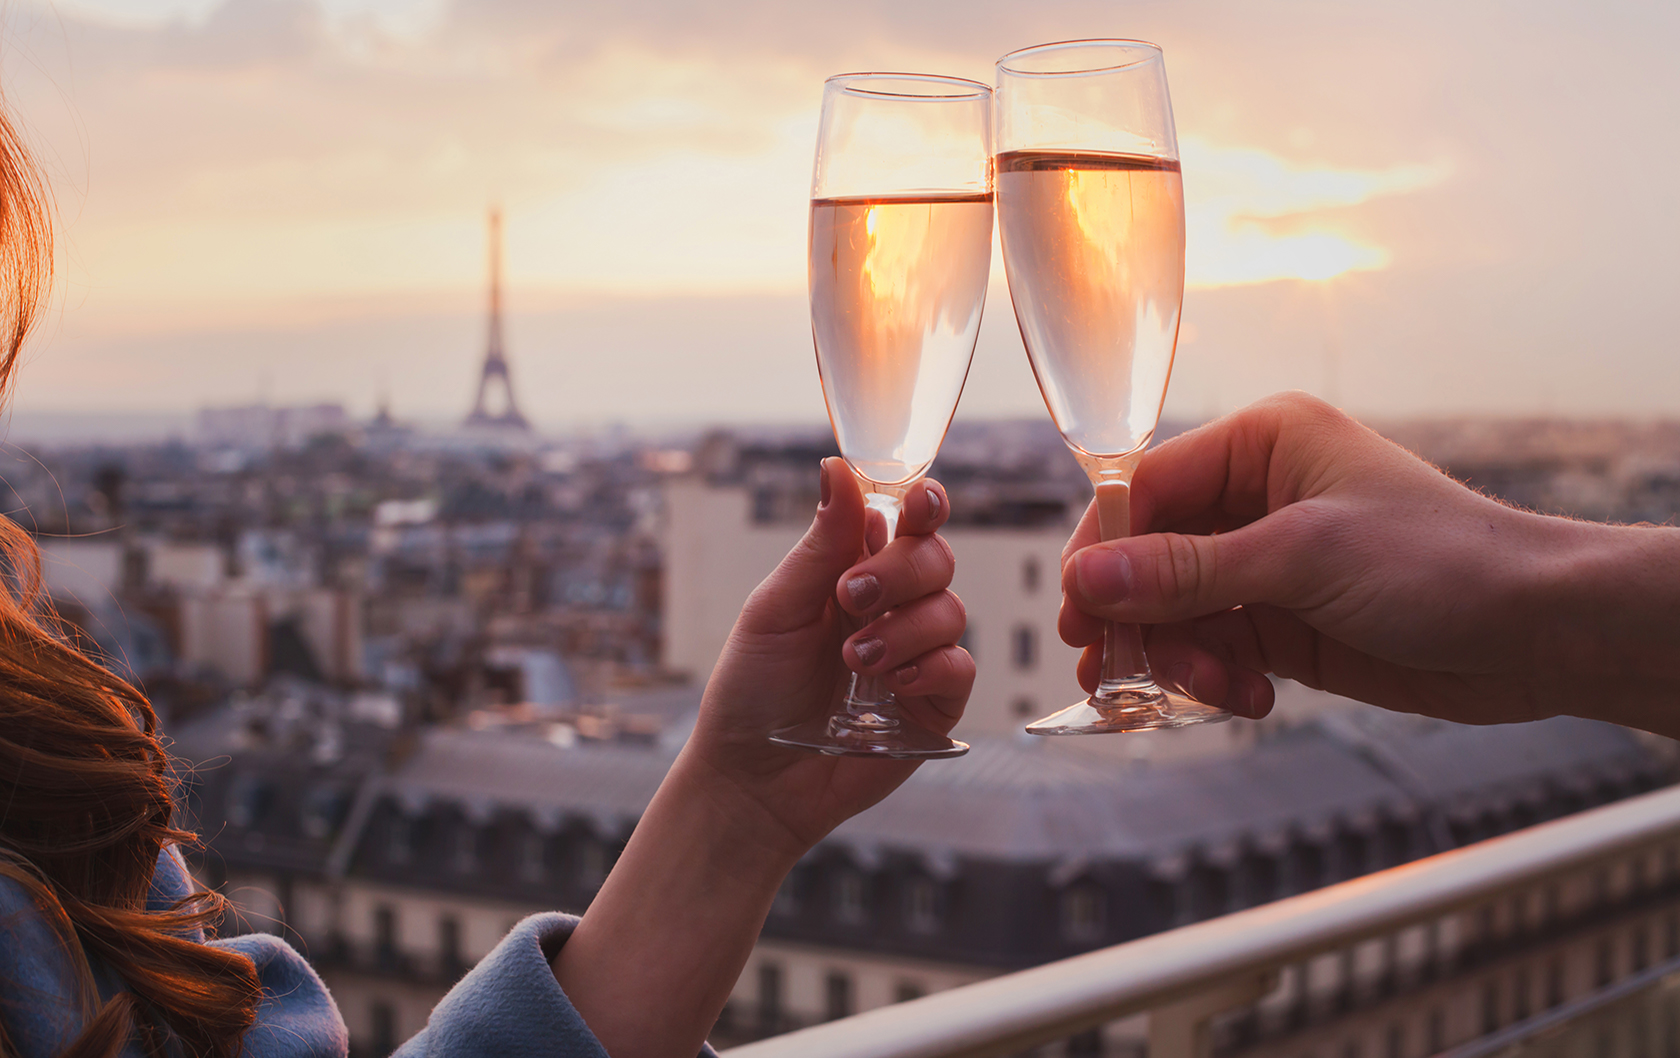 Romantic Spots and Inspiration from Paris for Valentine's Day